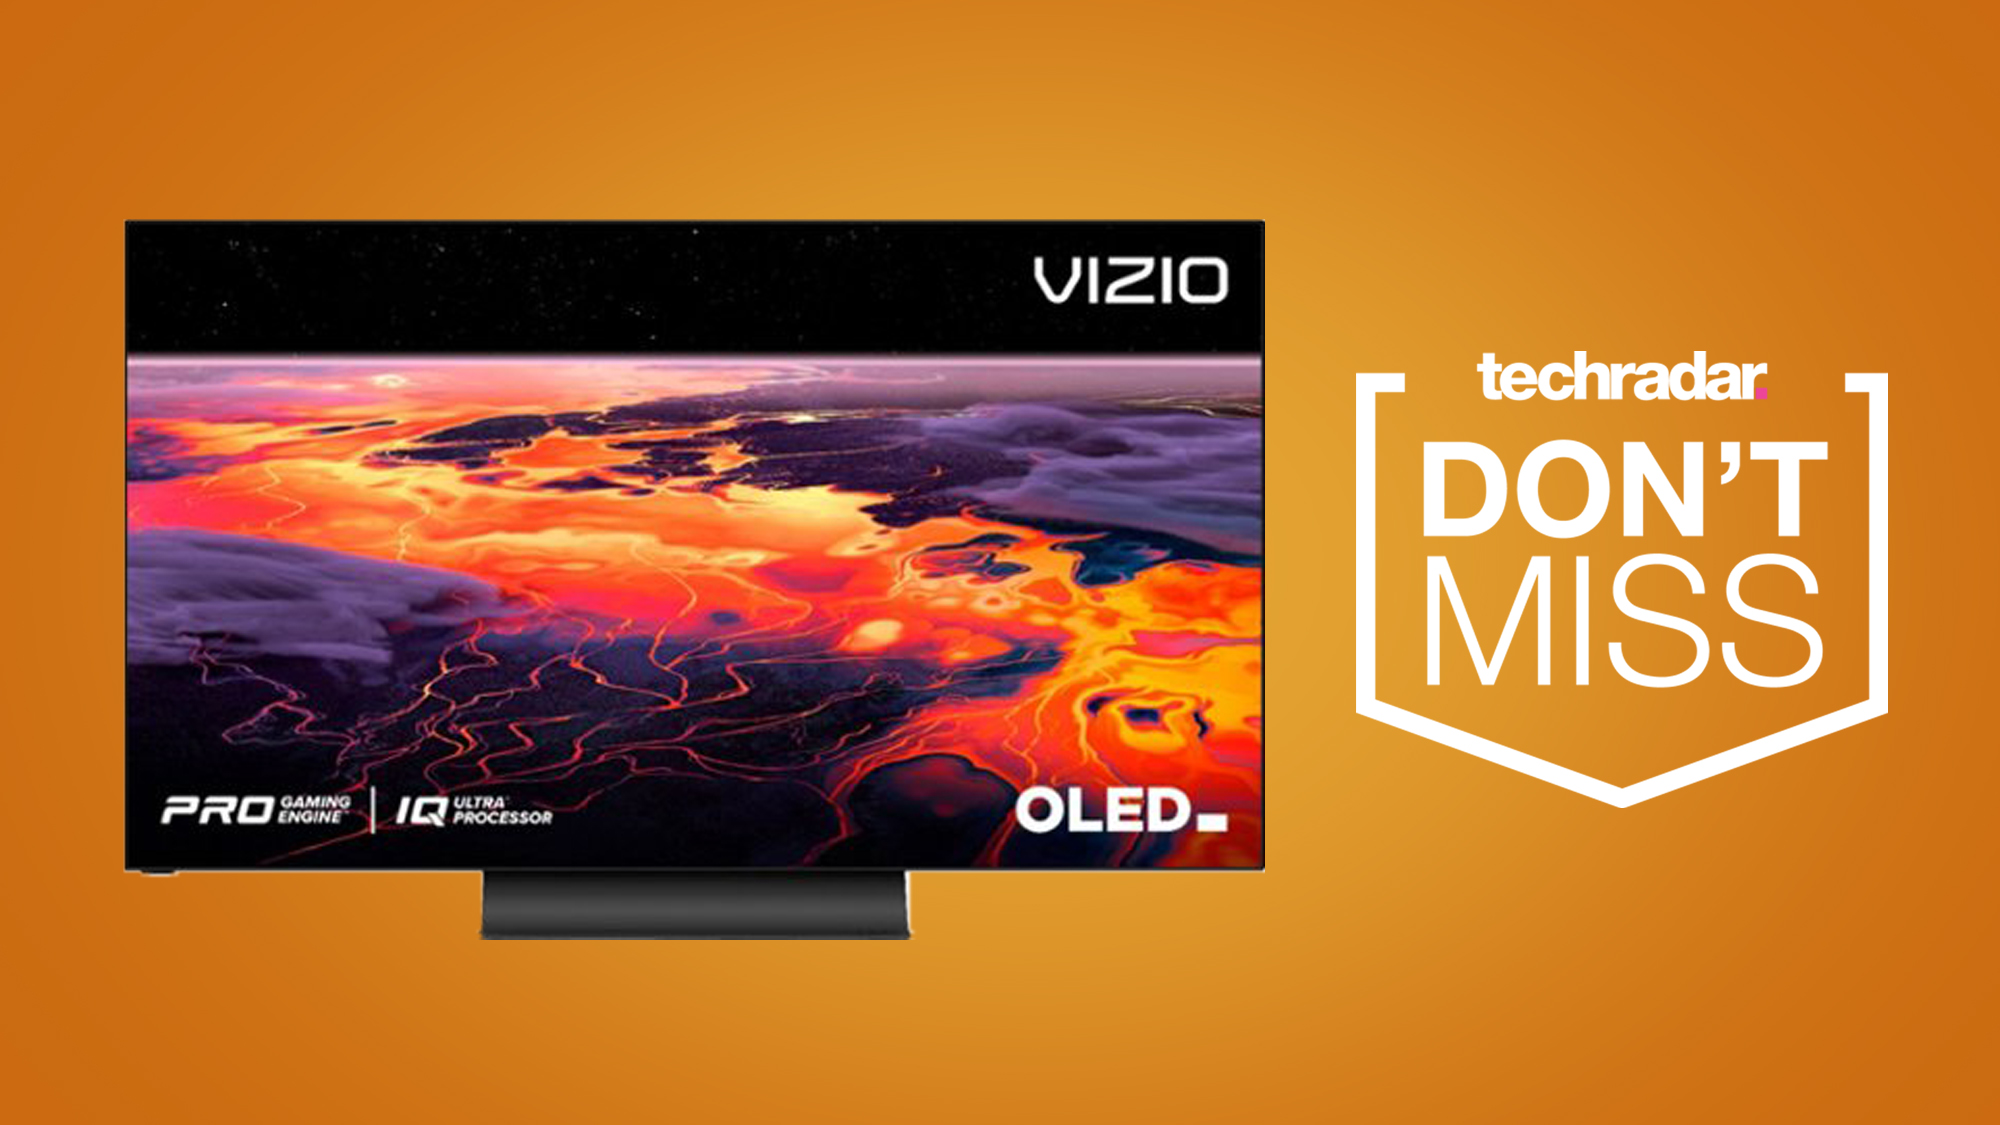 The Vizio Oled Tv Is Back At Its Best Ever Price In A Stunning Black Friday Tv Deal Techradar